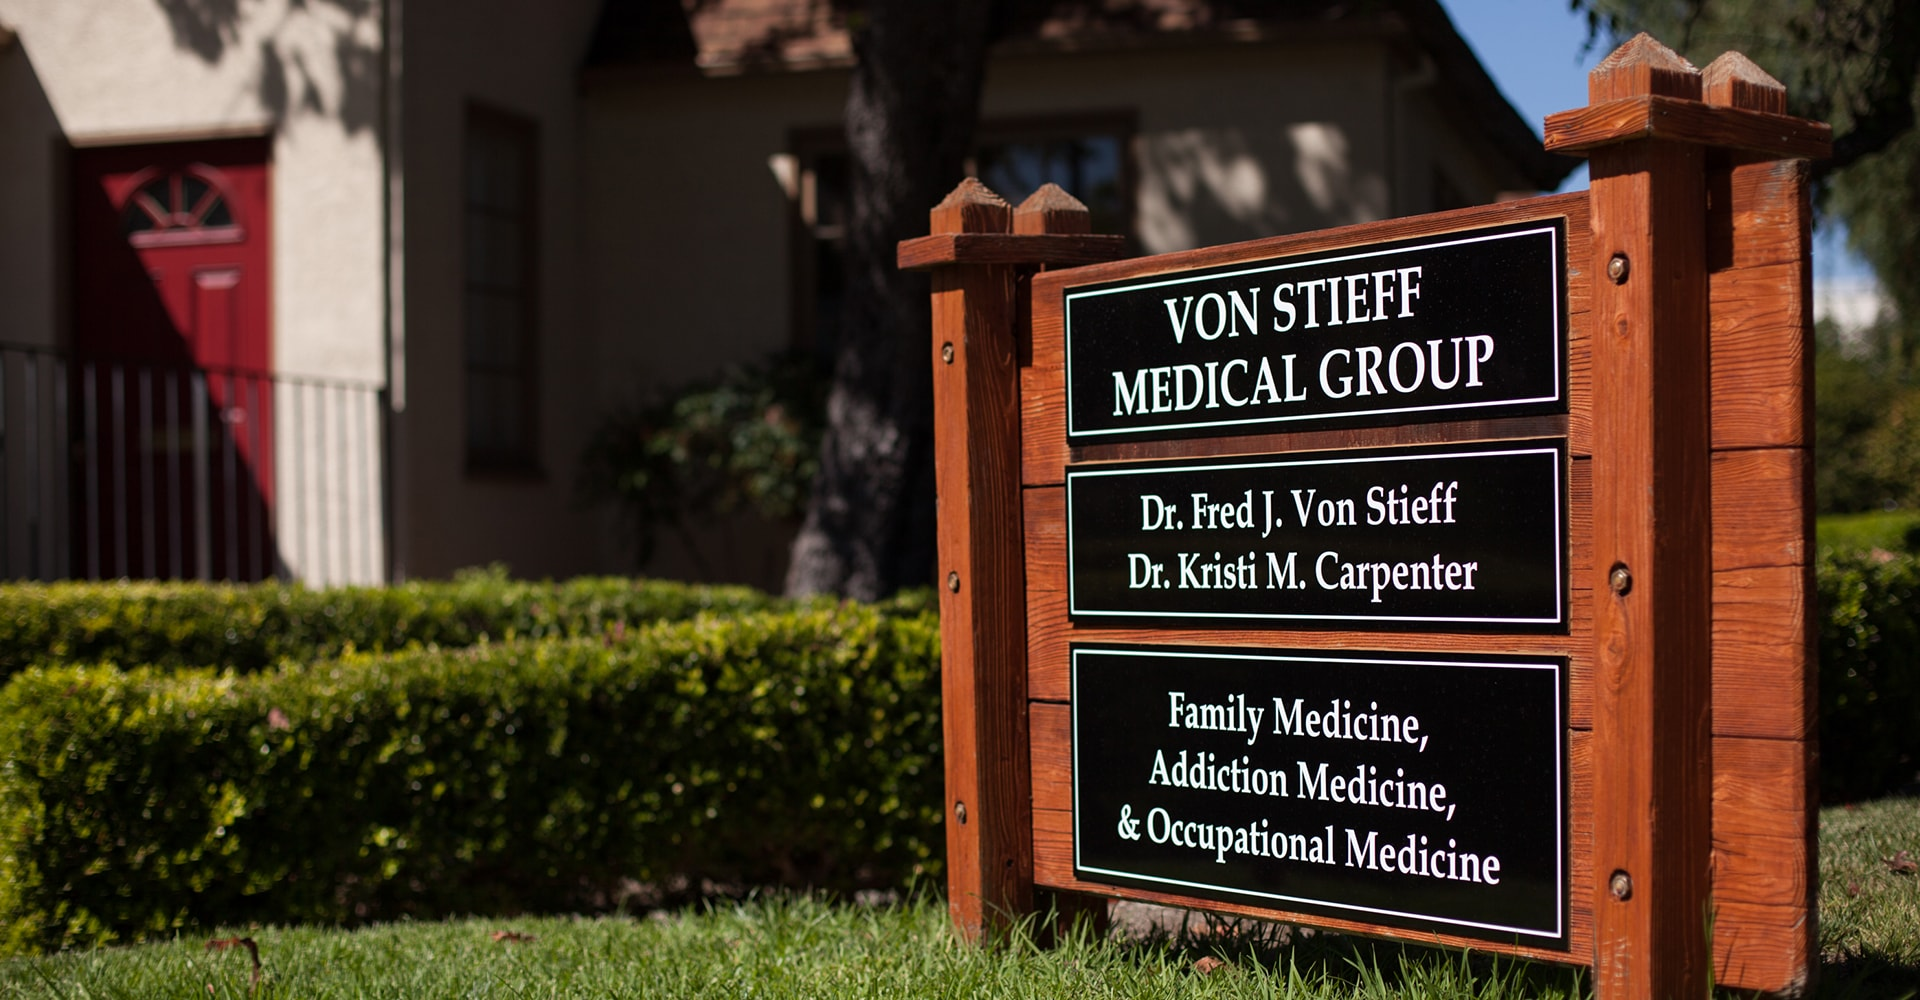 Contra County Industrial care is carried out at our Von Stieff Medical Group office